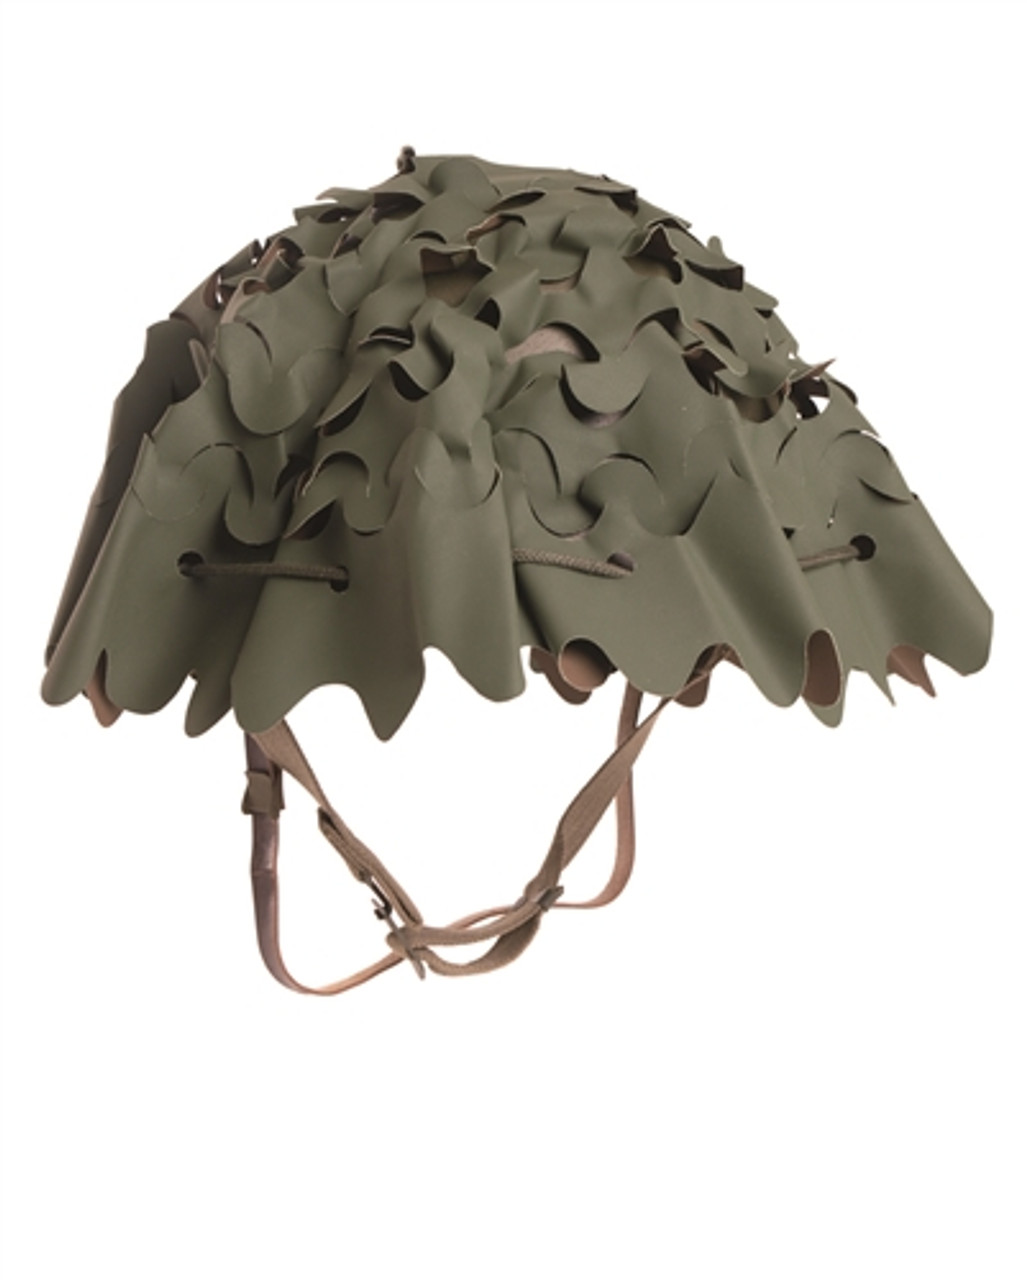 French F1 Camo Helmet Cover from Hessen Antique